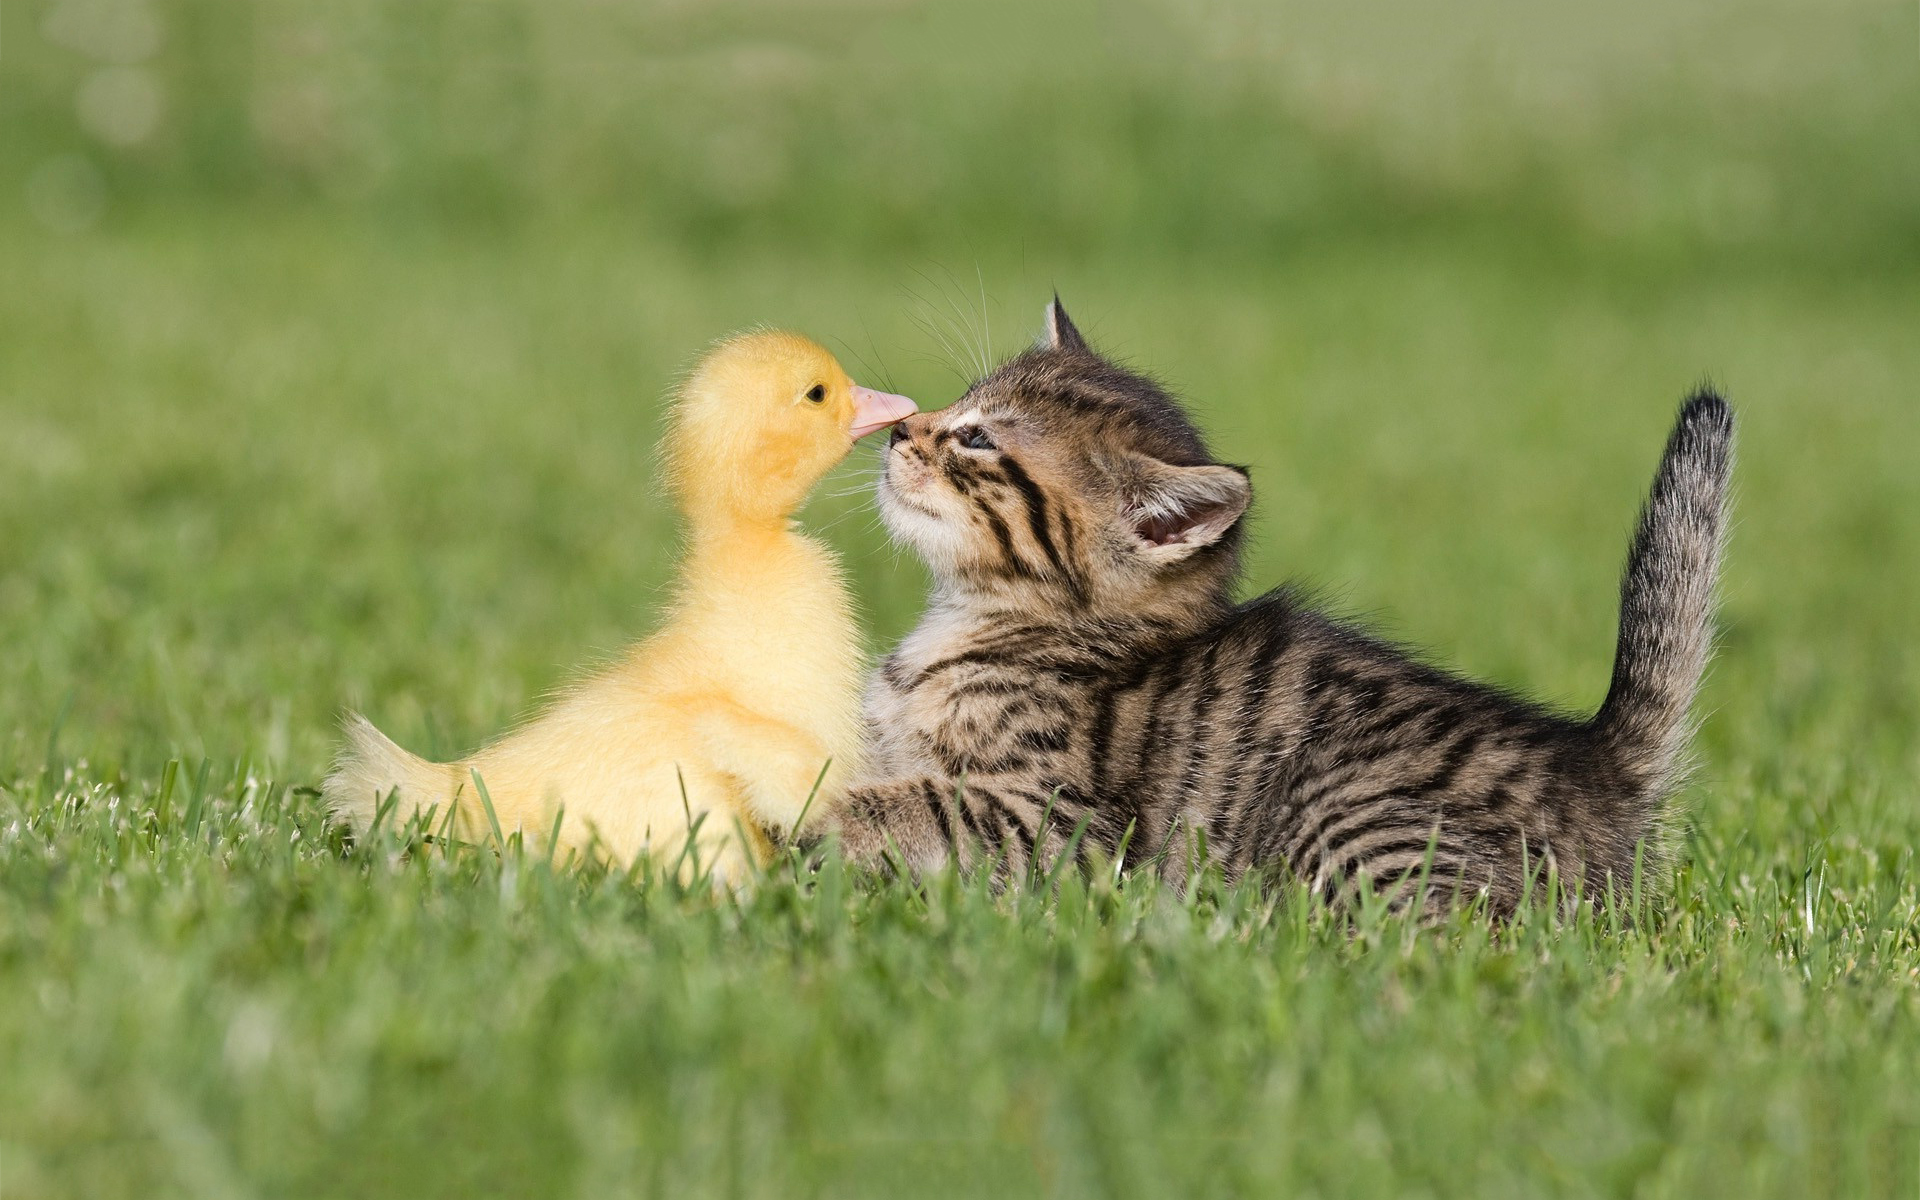 Kitty meets duckling